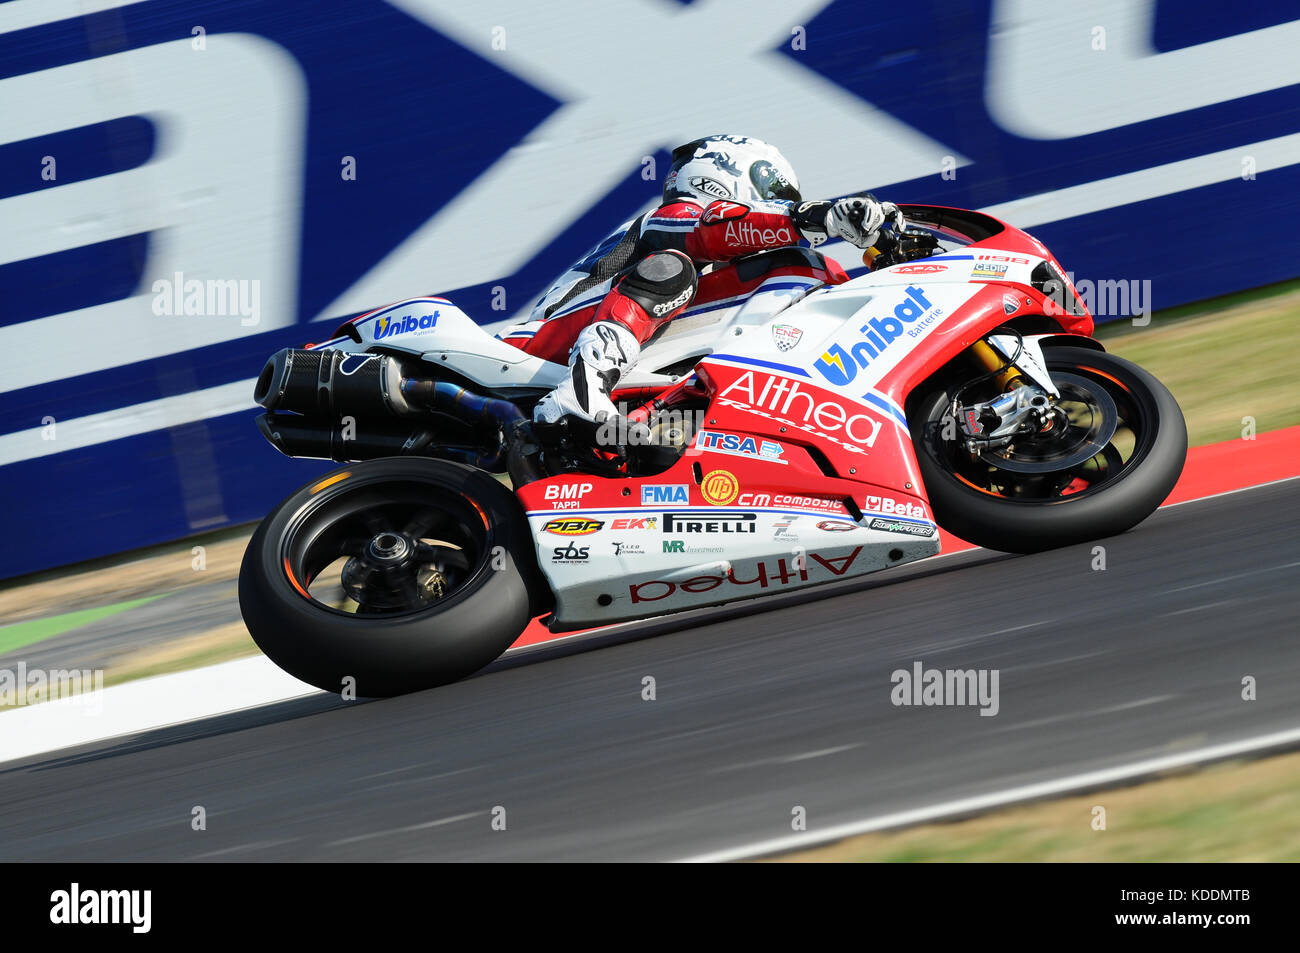 San Marino, Italy - Sep 24, 2011: Ducati 1198R of Althea Racing, driven by Carlos Checa in action during the Superbike Stock Photo